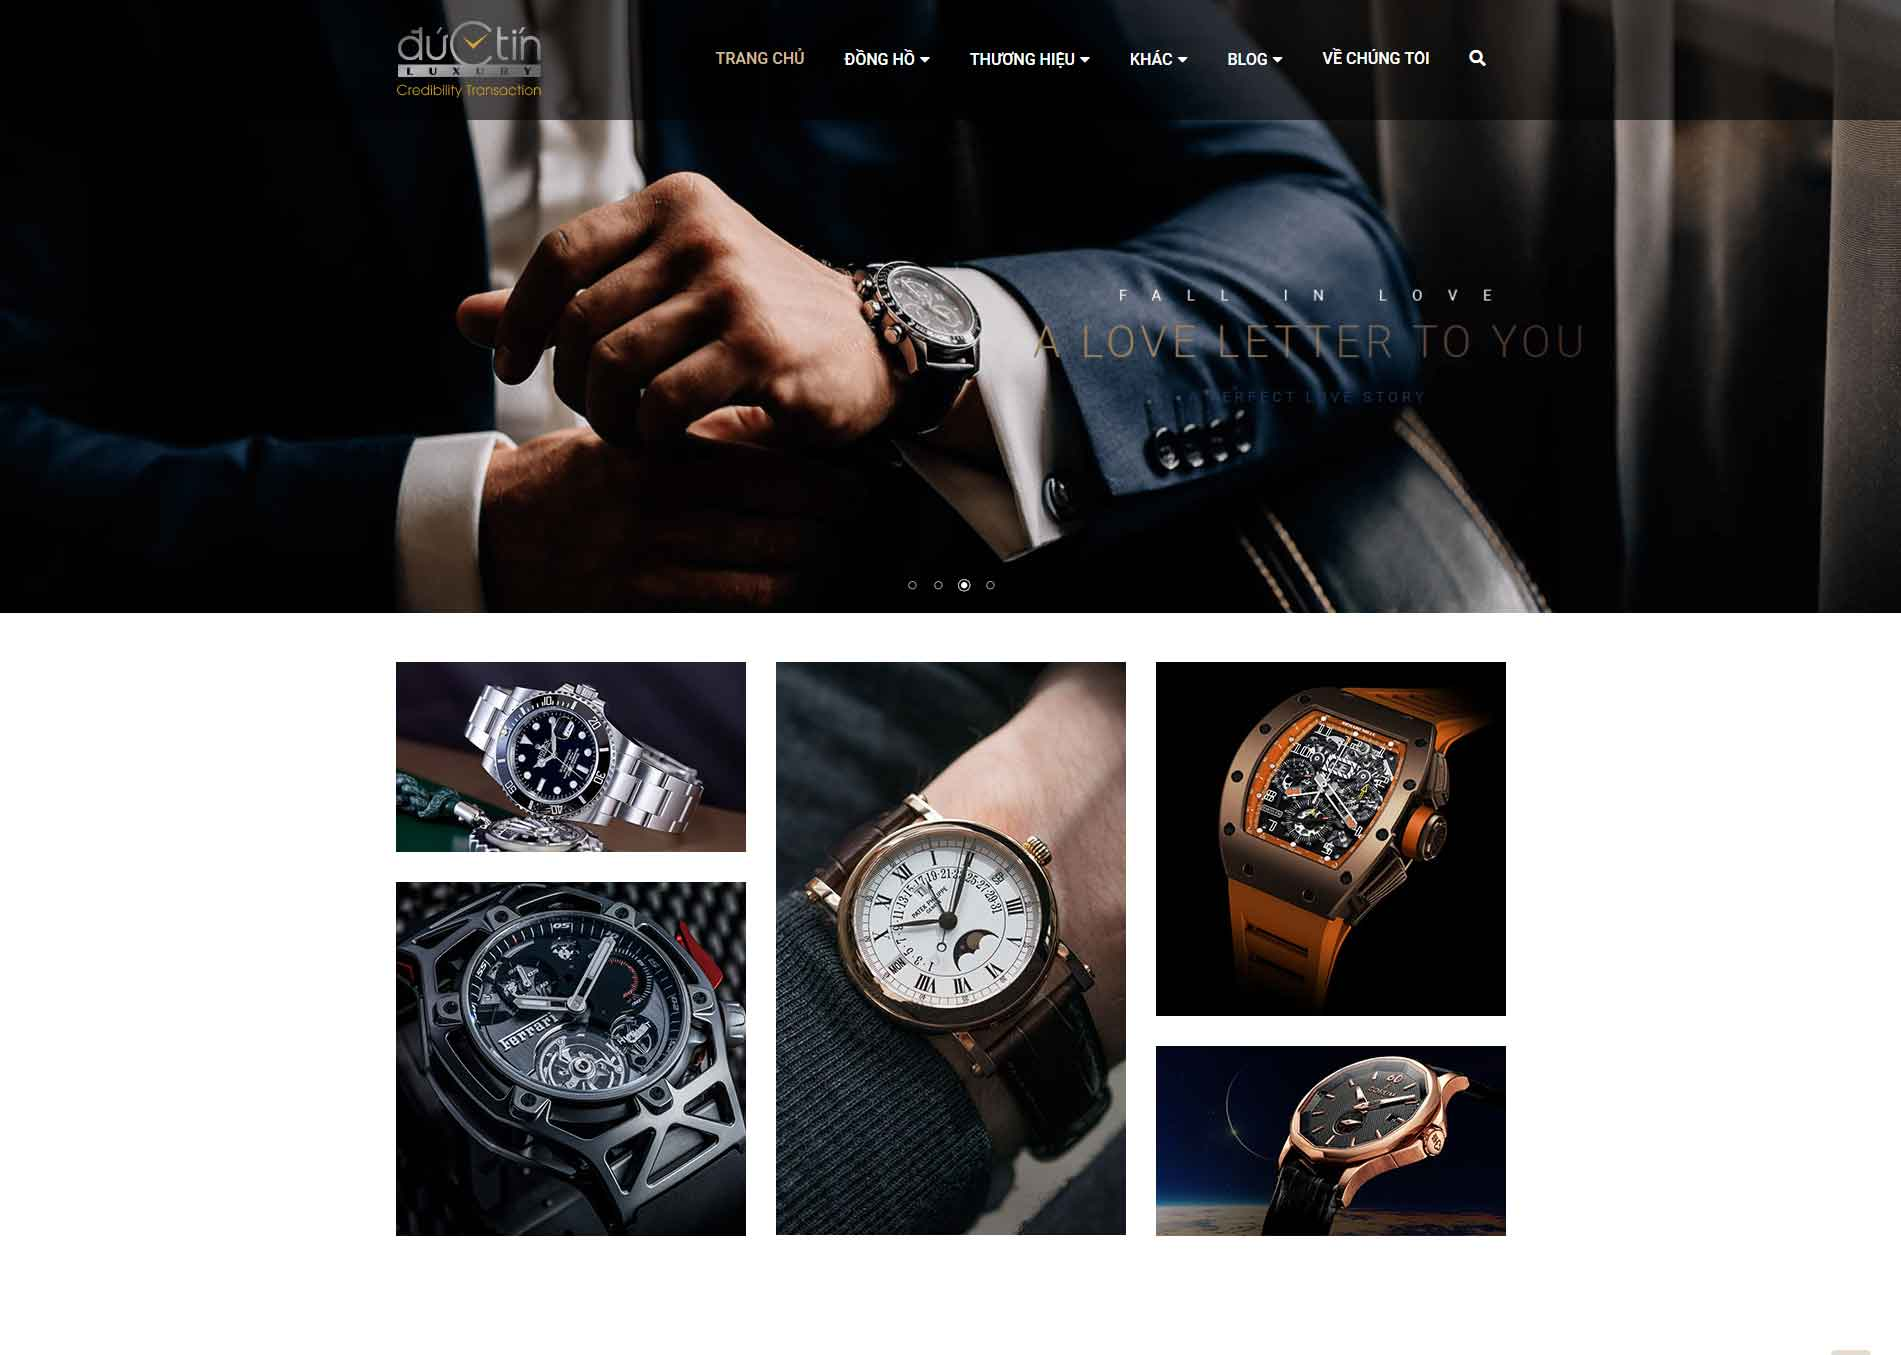 quan-tri-website-ductinluxury-com